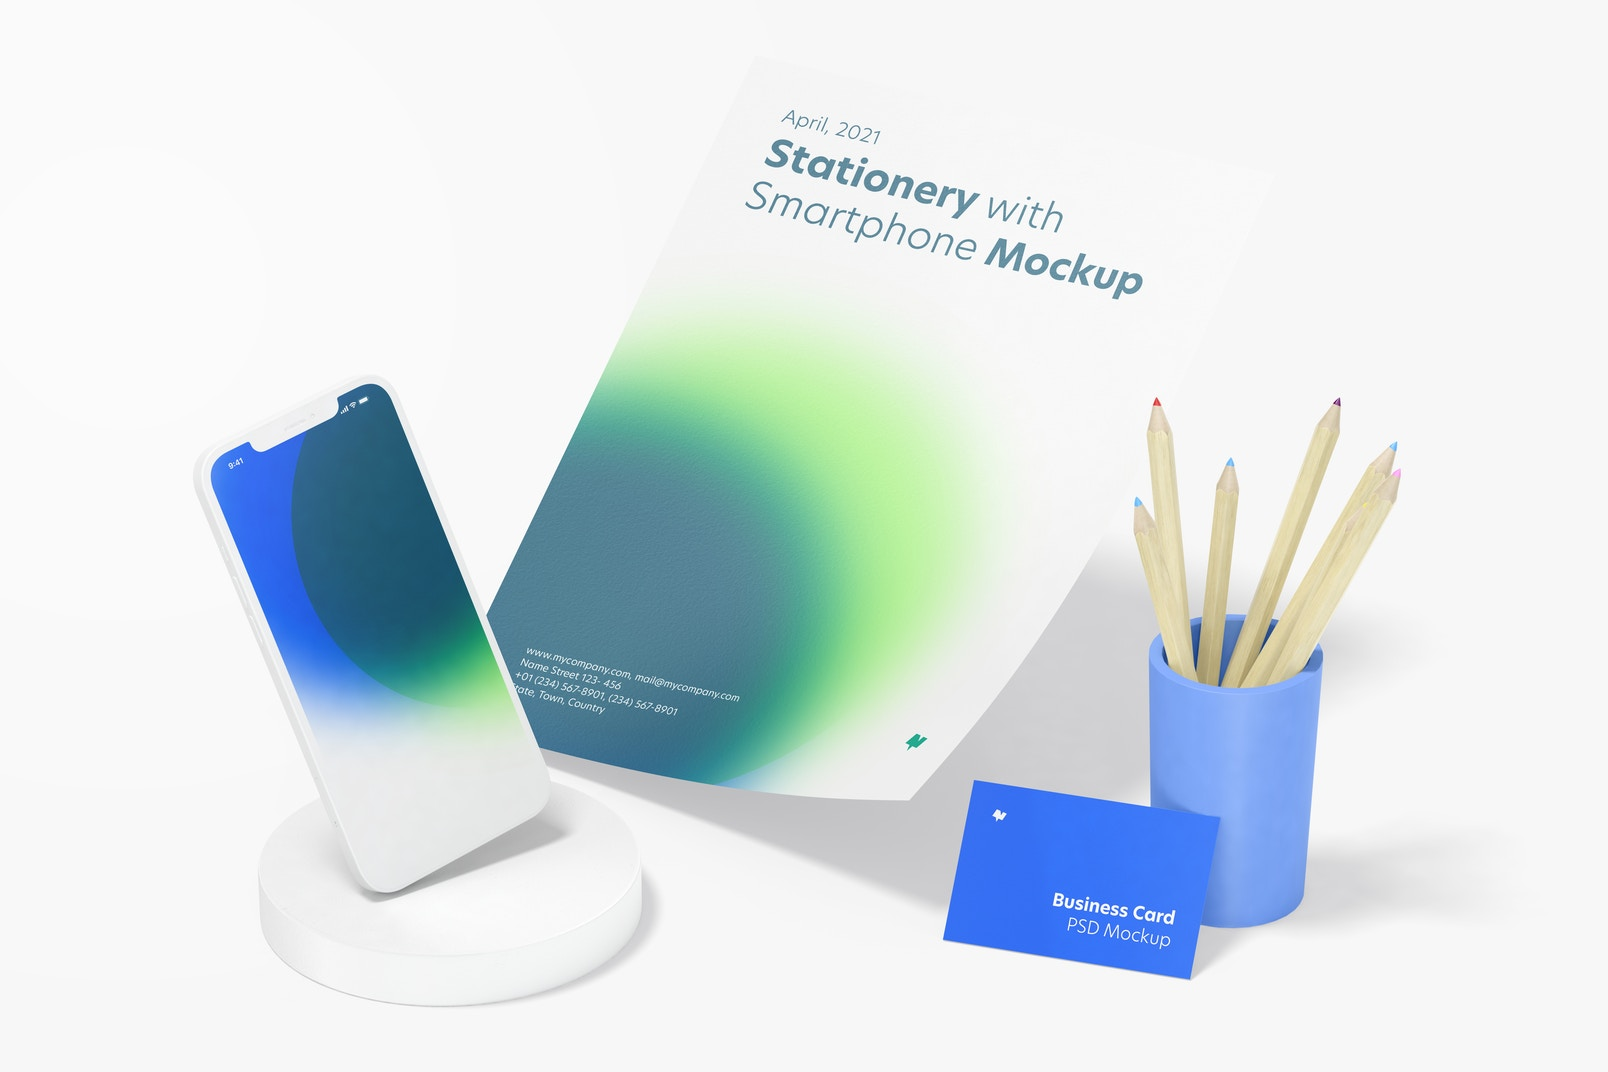 Stationery with Smartphone Mockup, Perspective